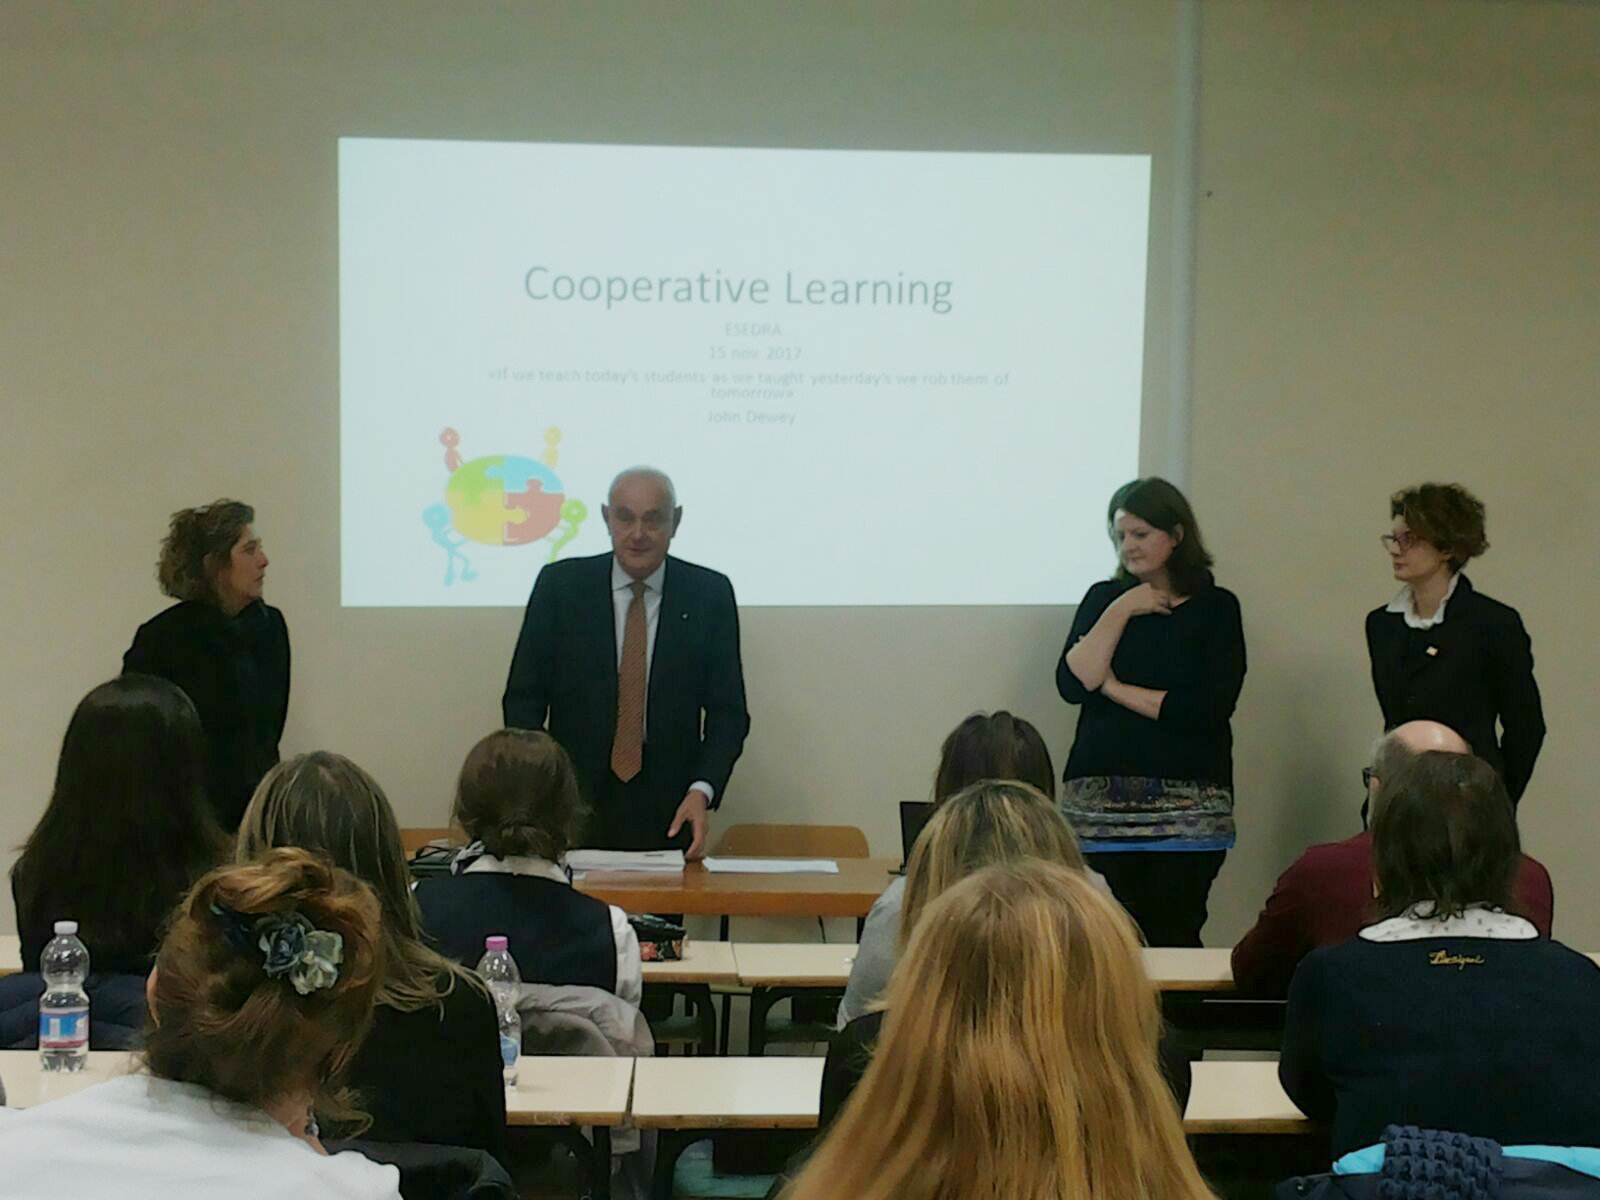 Conferenza Cooperative Learning